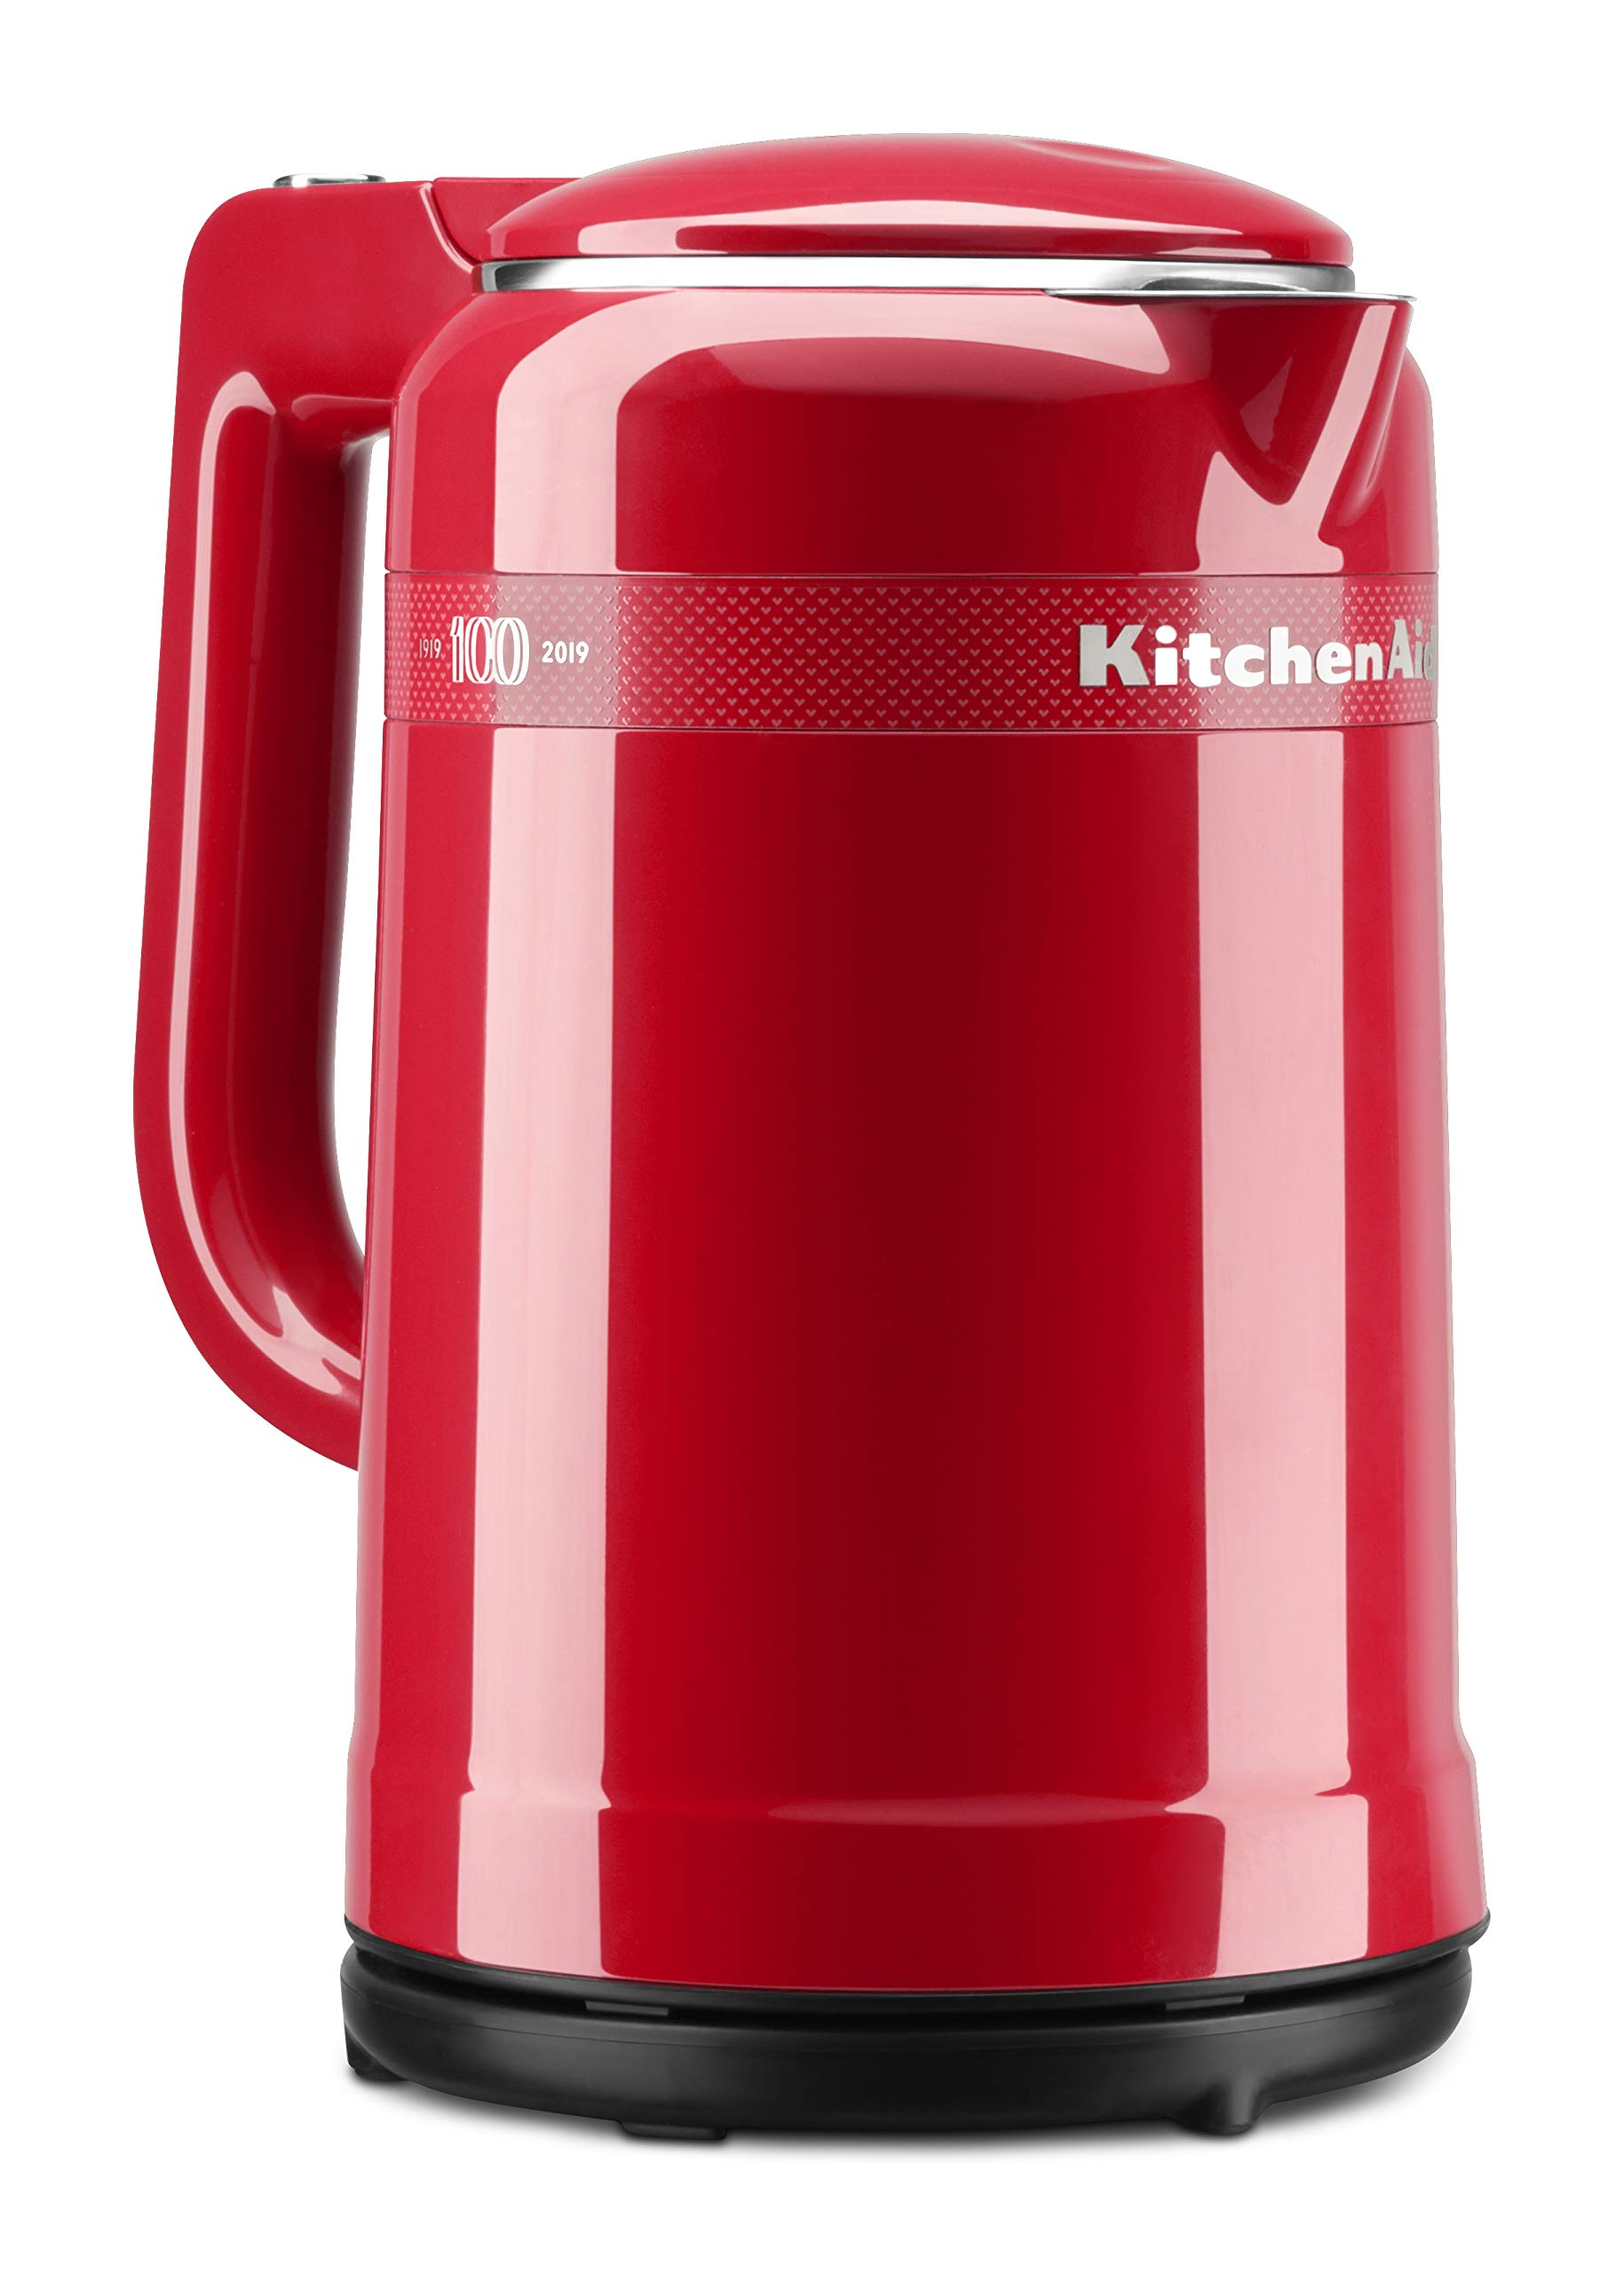 KitchenAid KEK1565QHSD 100 Year Limited Edition Queen of Hearts Electric Kettle, Passion Red